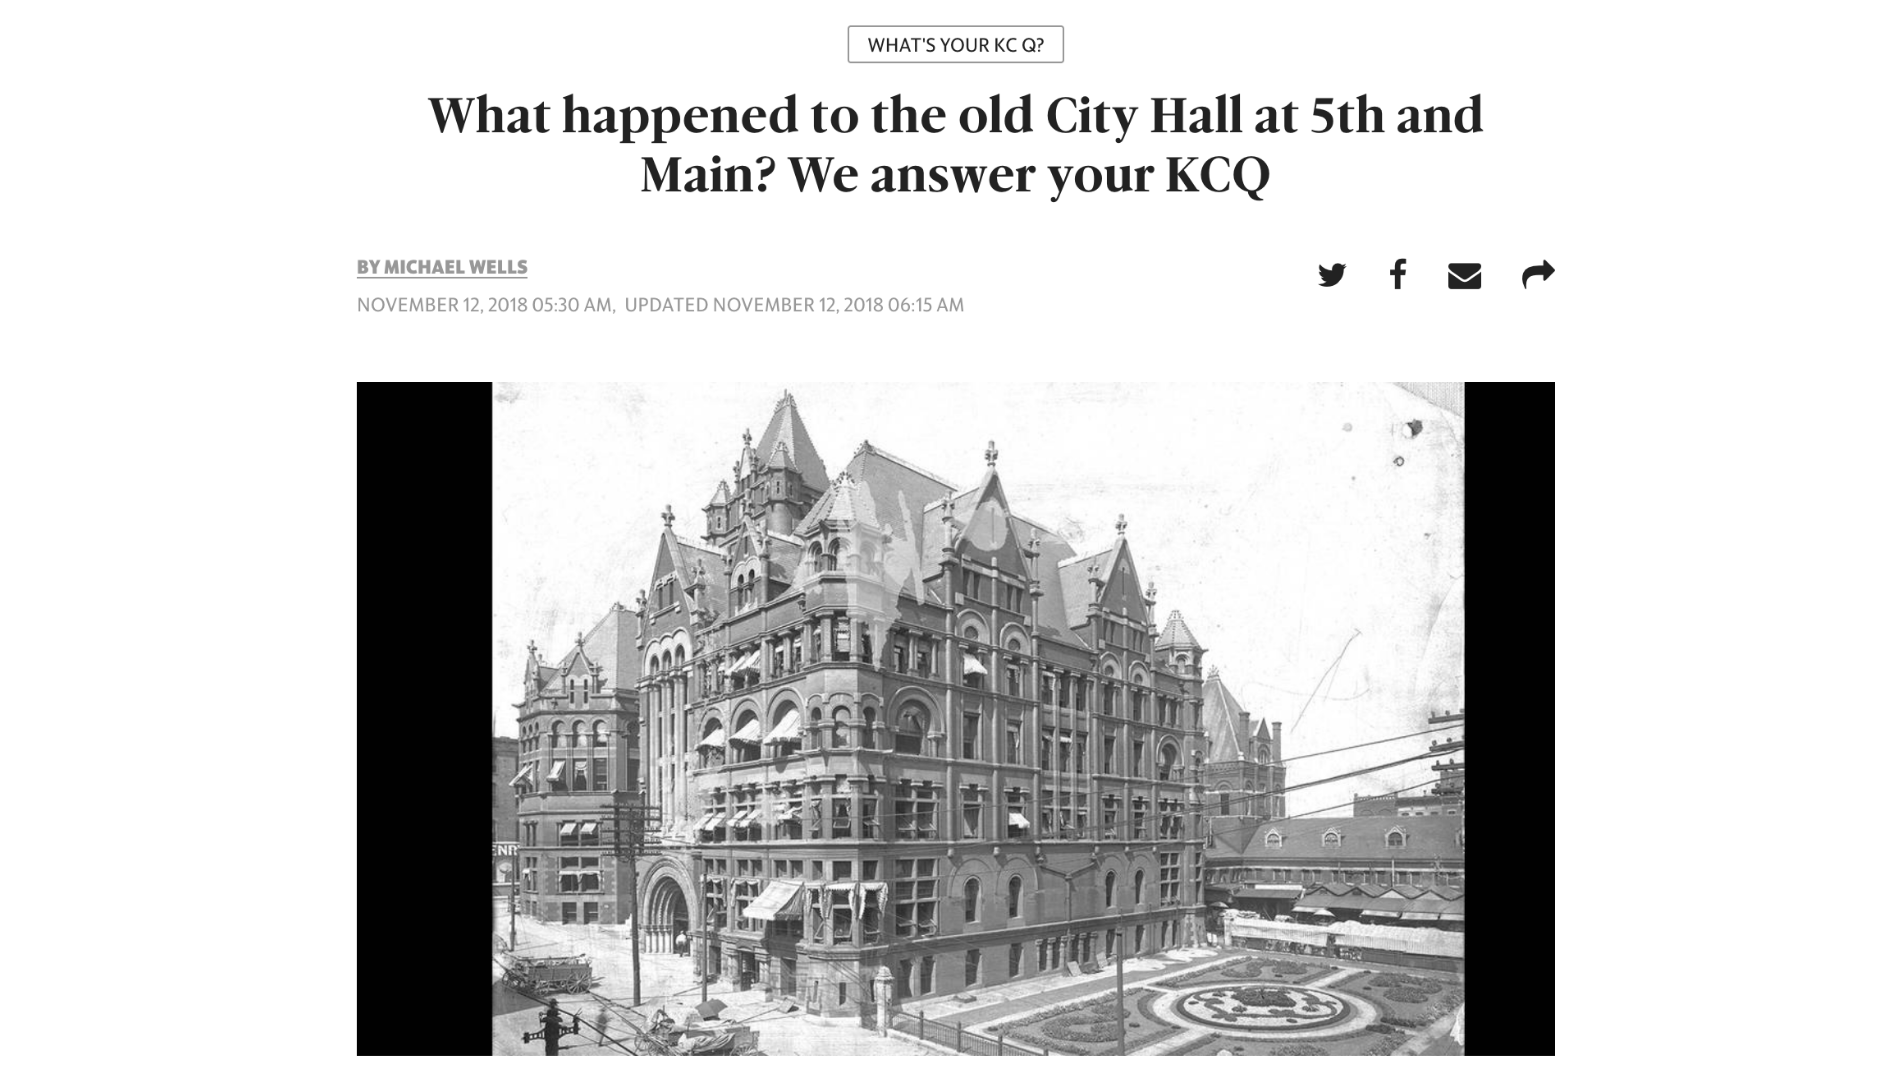 KCQ, explainers and more: Kansas City Star goes deeper into transparency and engagement